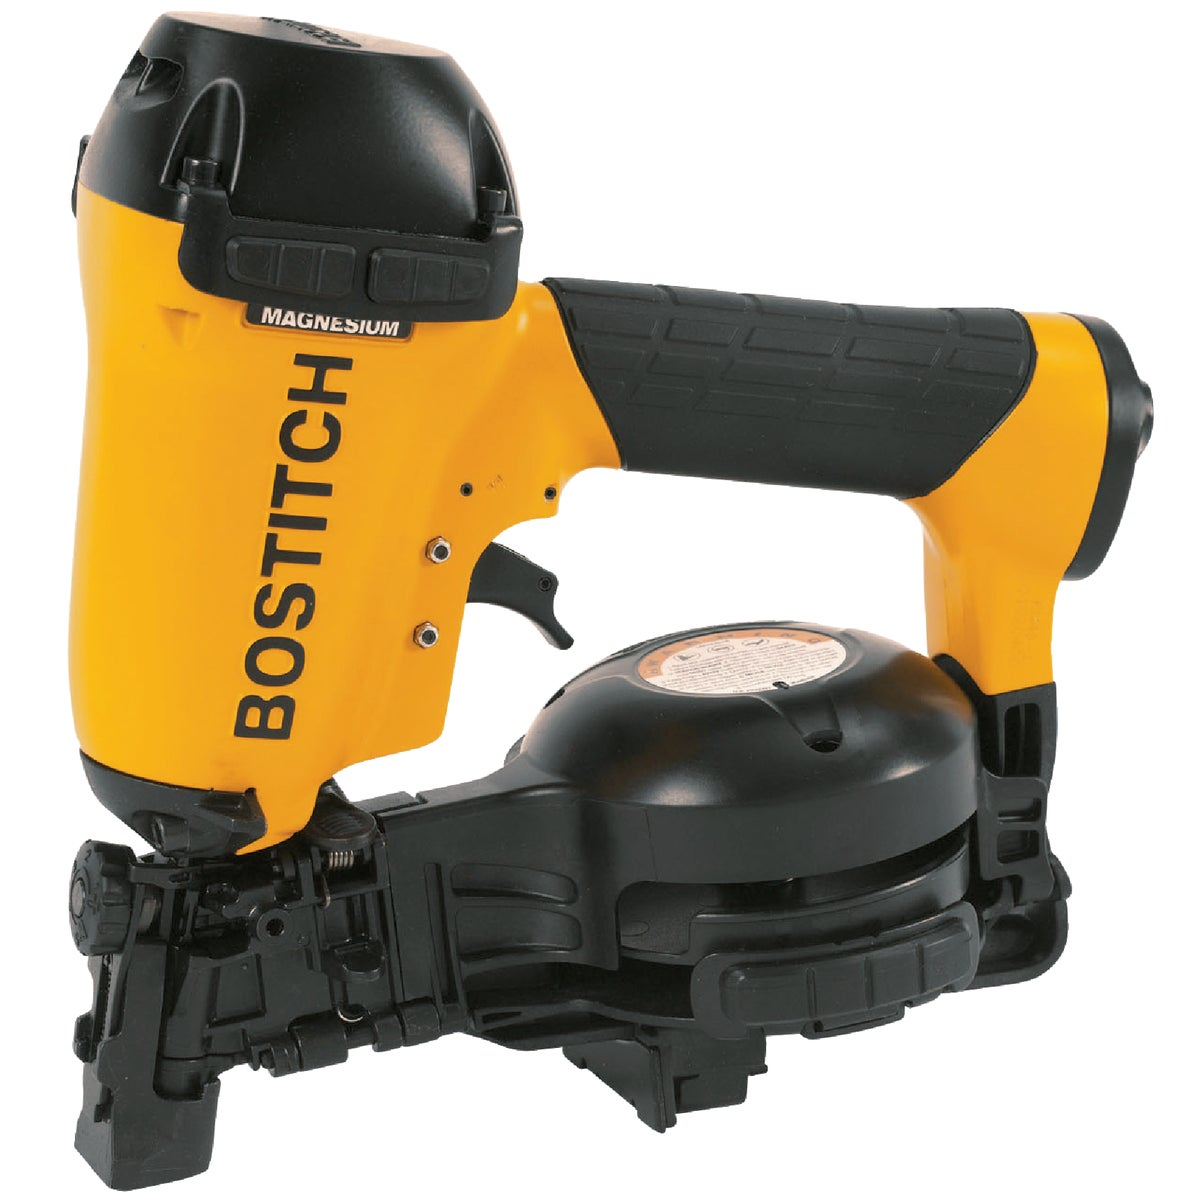 COIL ROOFING NAILER - RN46-1 by Stanley Bostitch